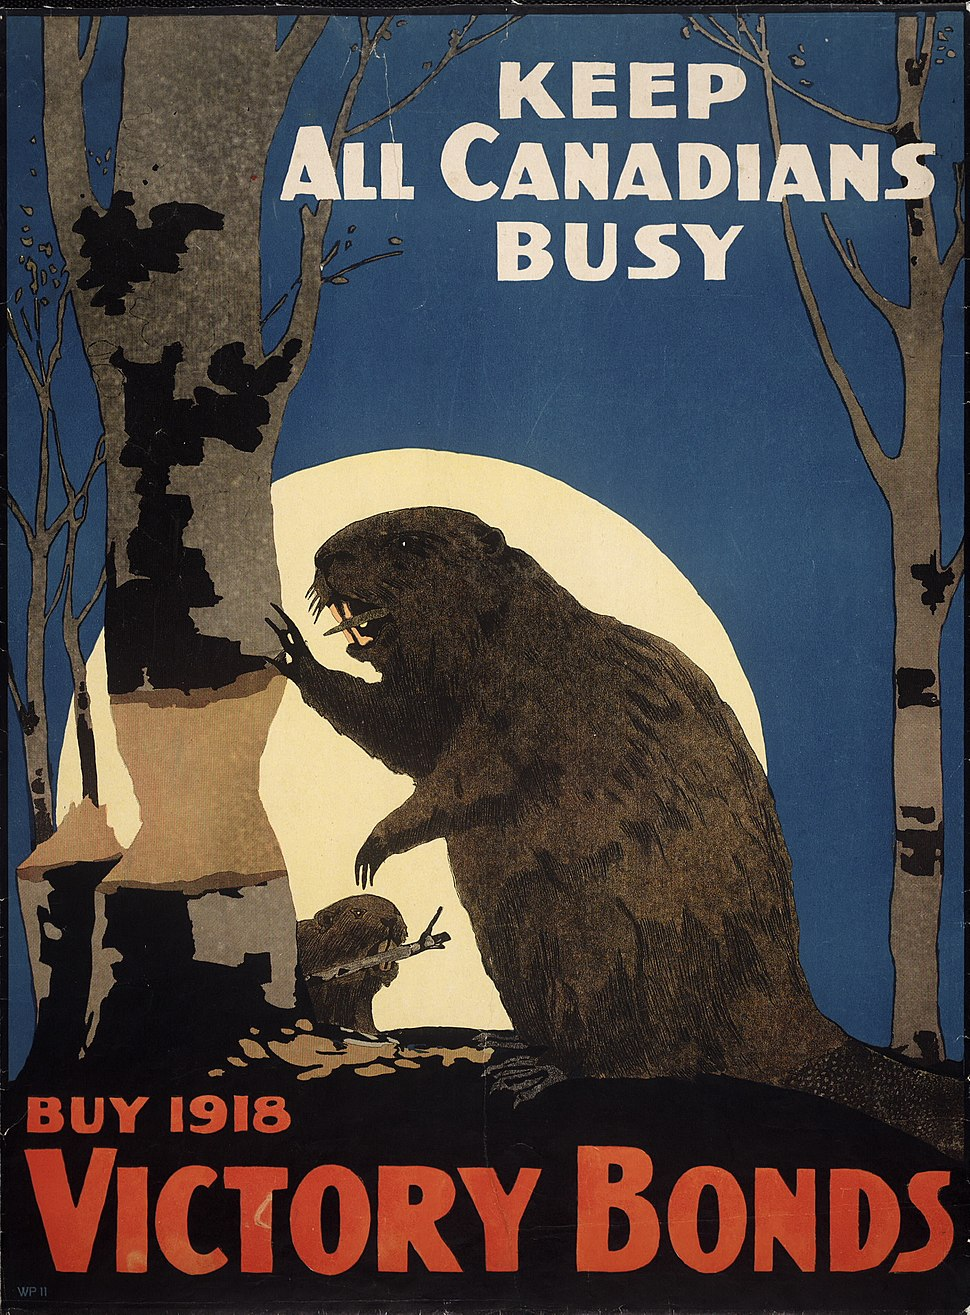 Keep All Canadians Busy - Victory bonds poster